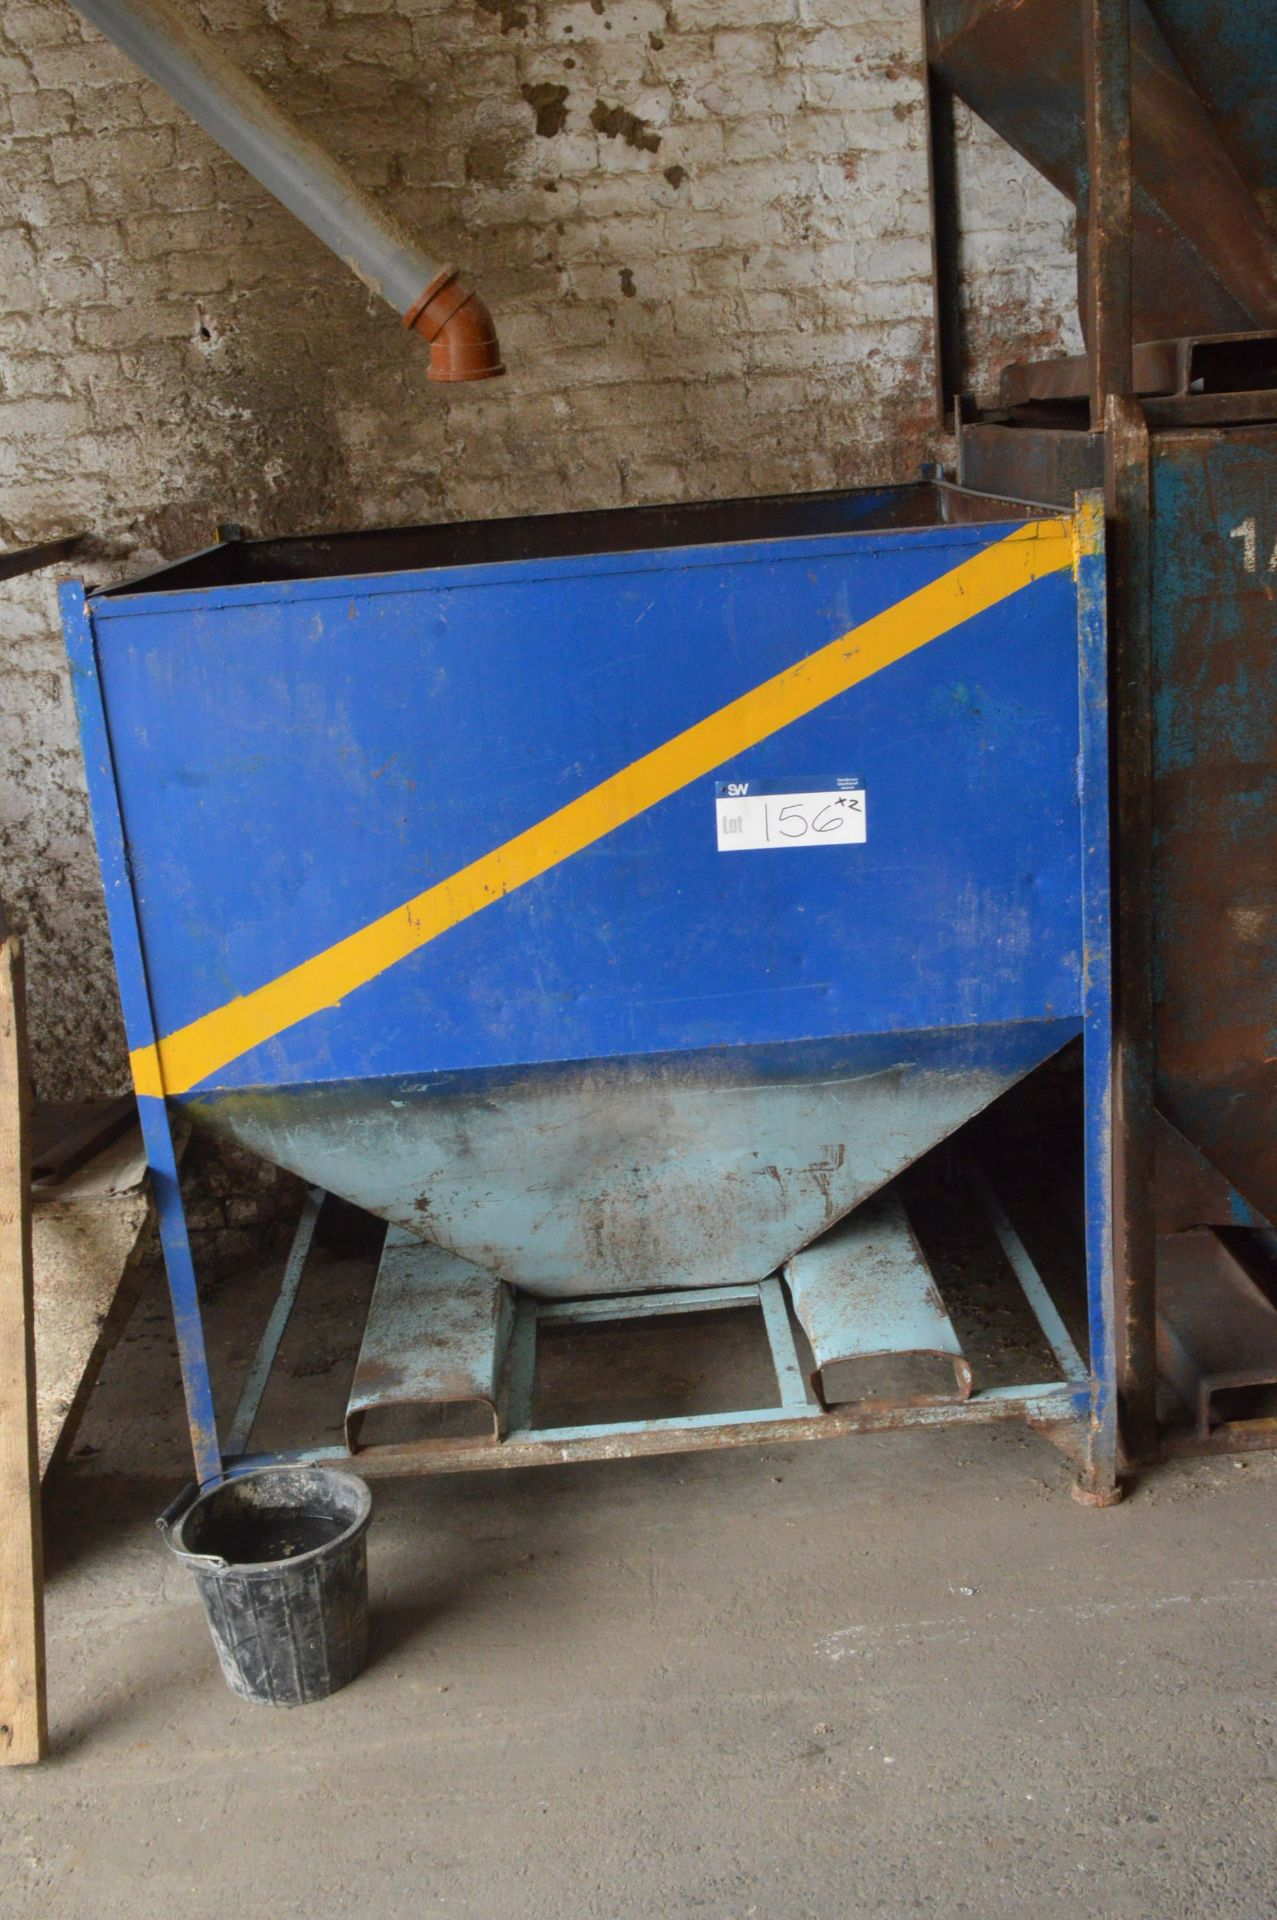 Lot 156 - Two x 1 tonne Hopper Bottom Tote Bins, each approx. 1.43m x 1.2m x 1.33m deep overall, with fork